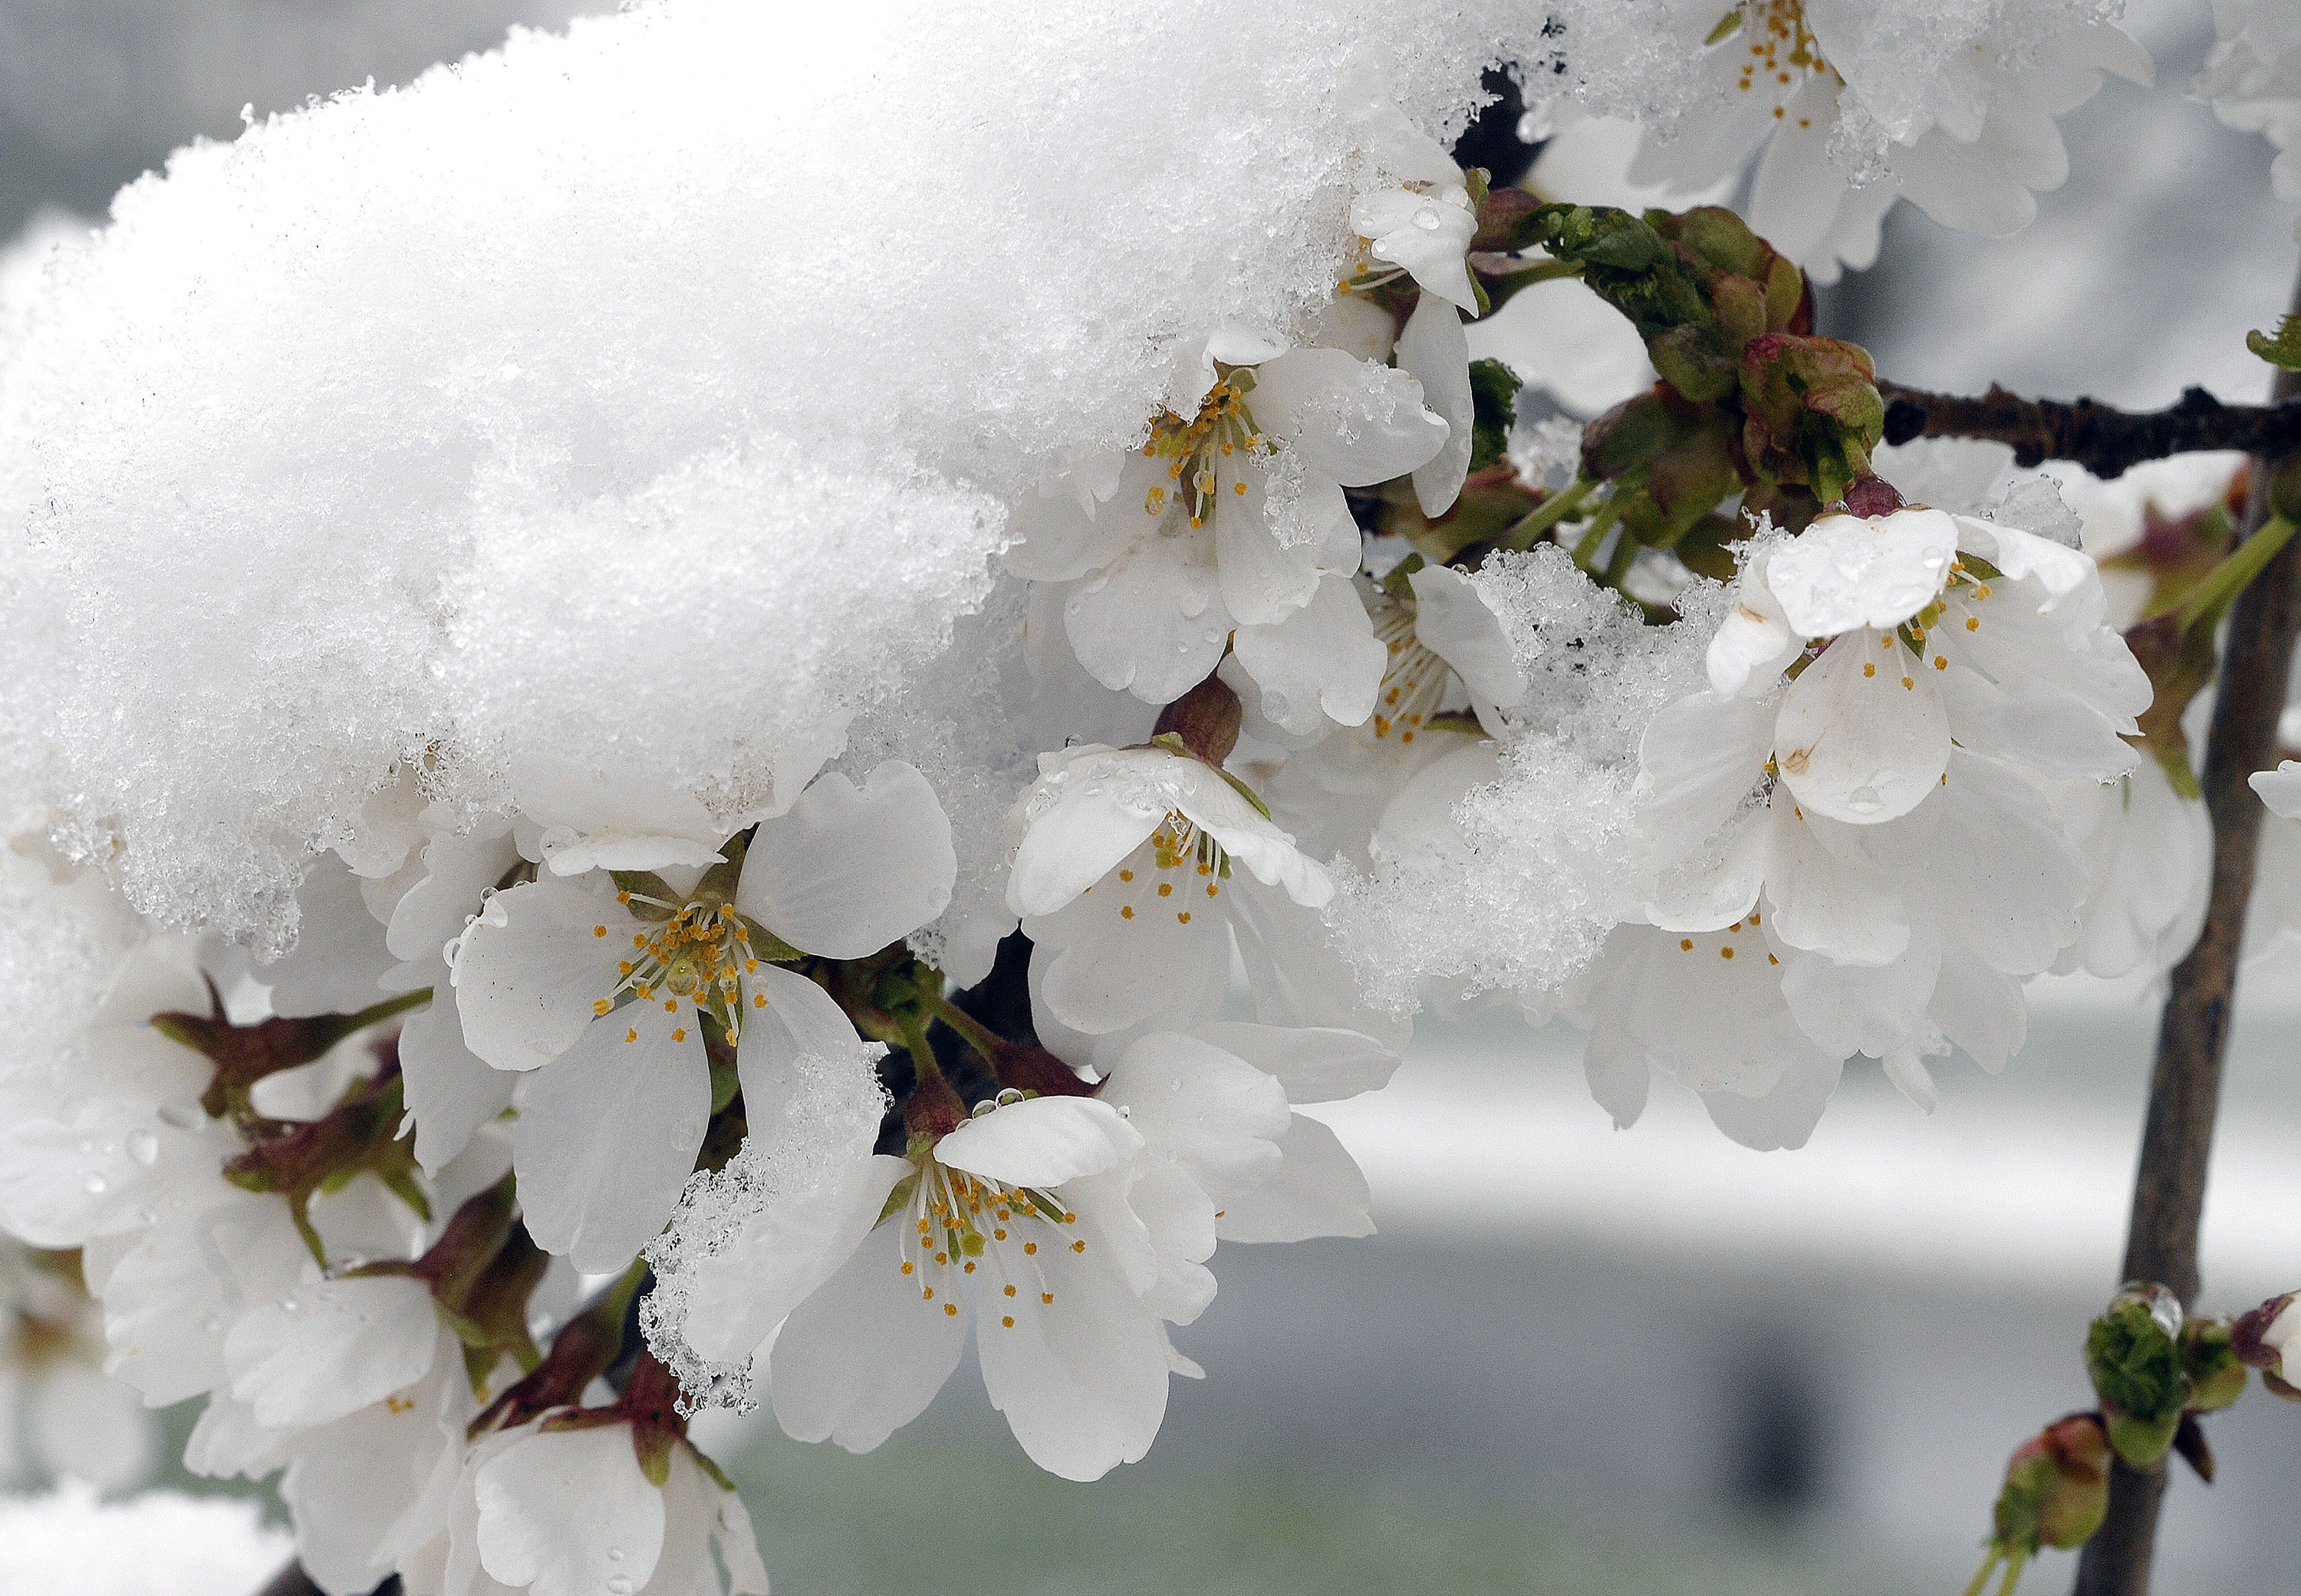 Fruit Growers Try Tricking Mother Nature To Prevent Crop Damage